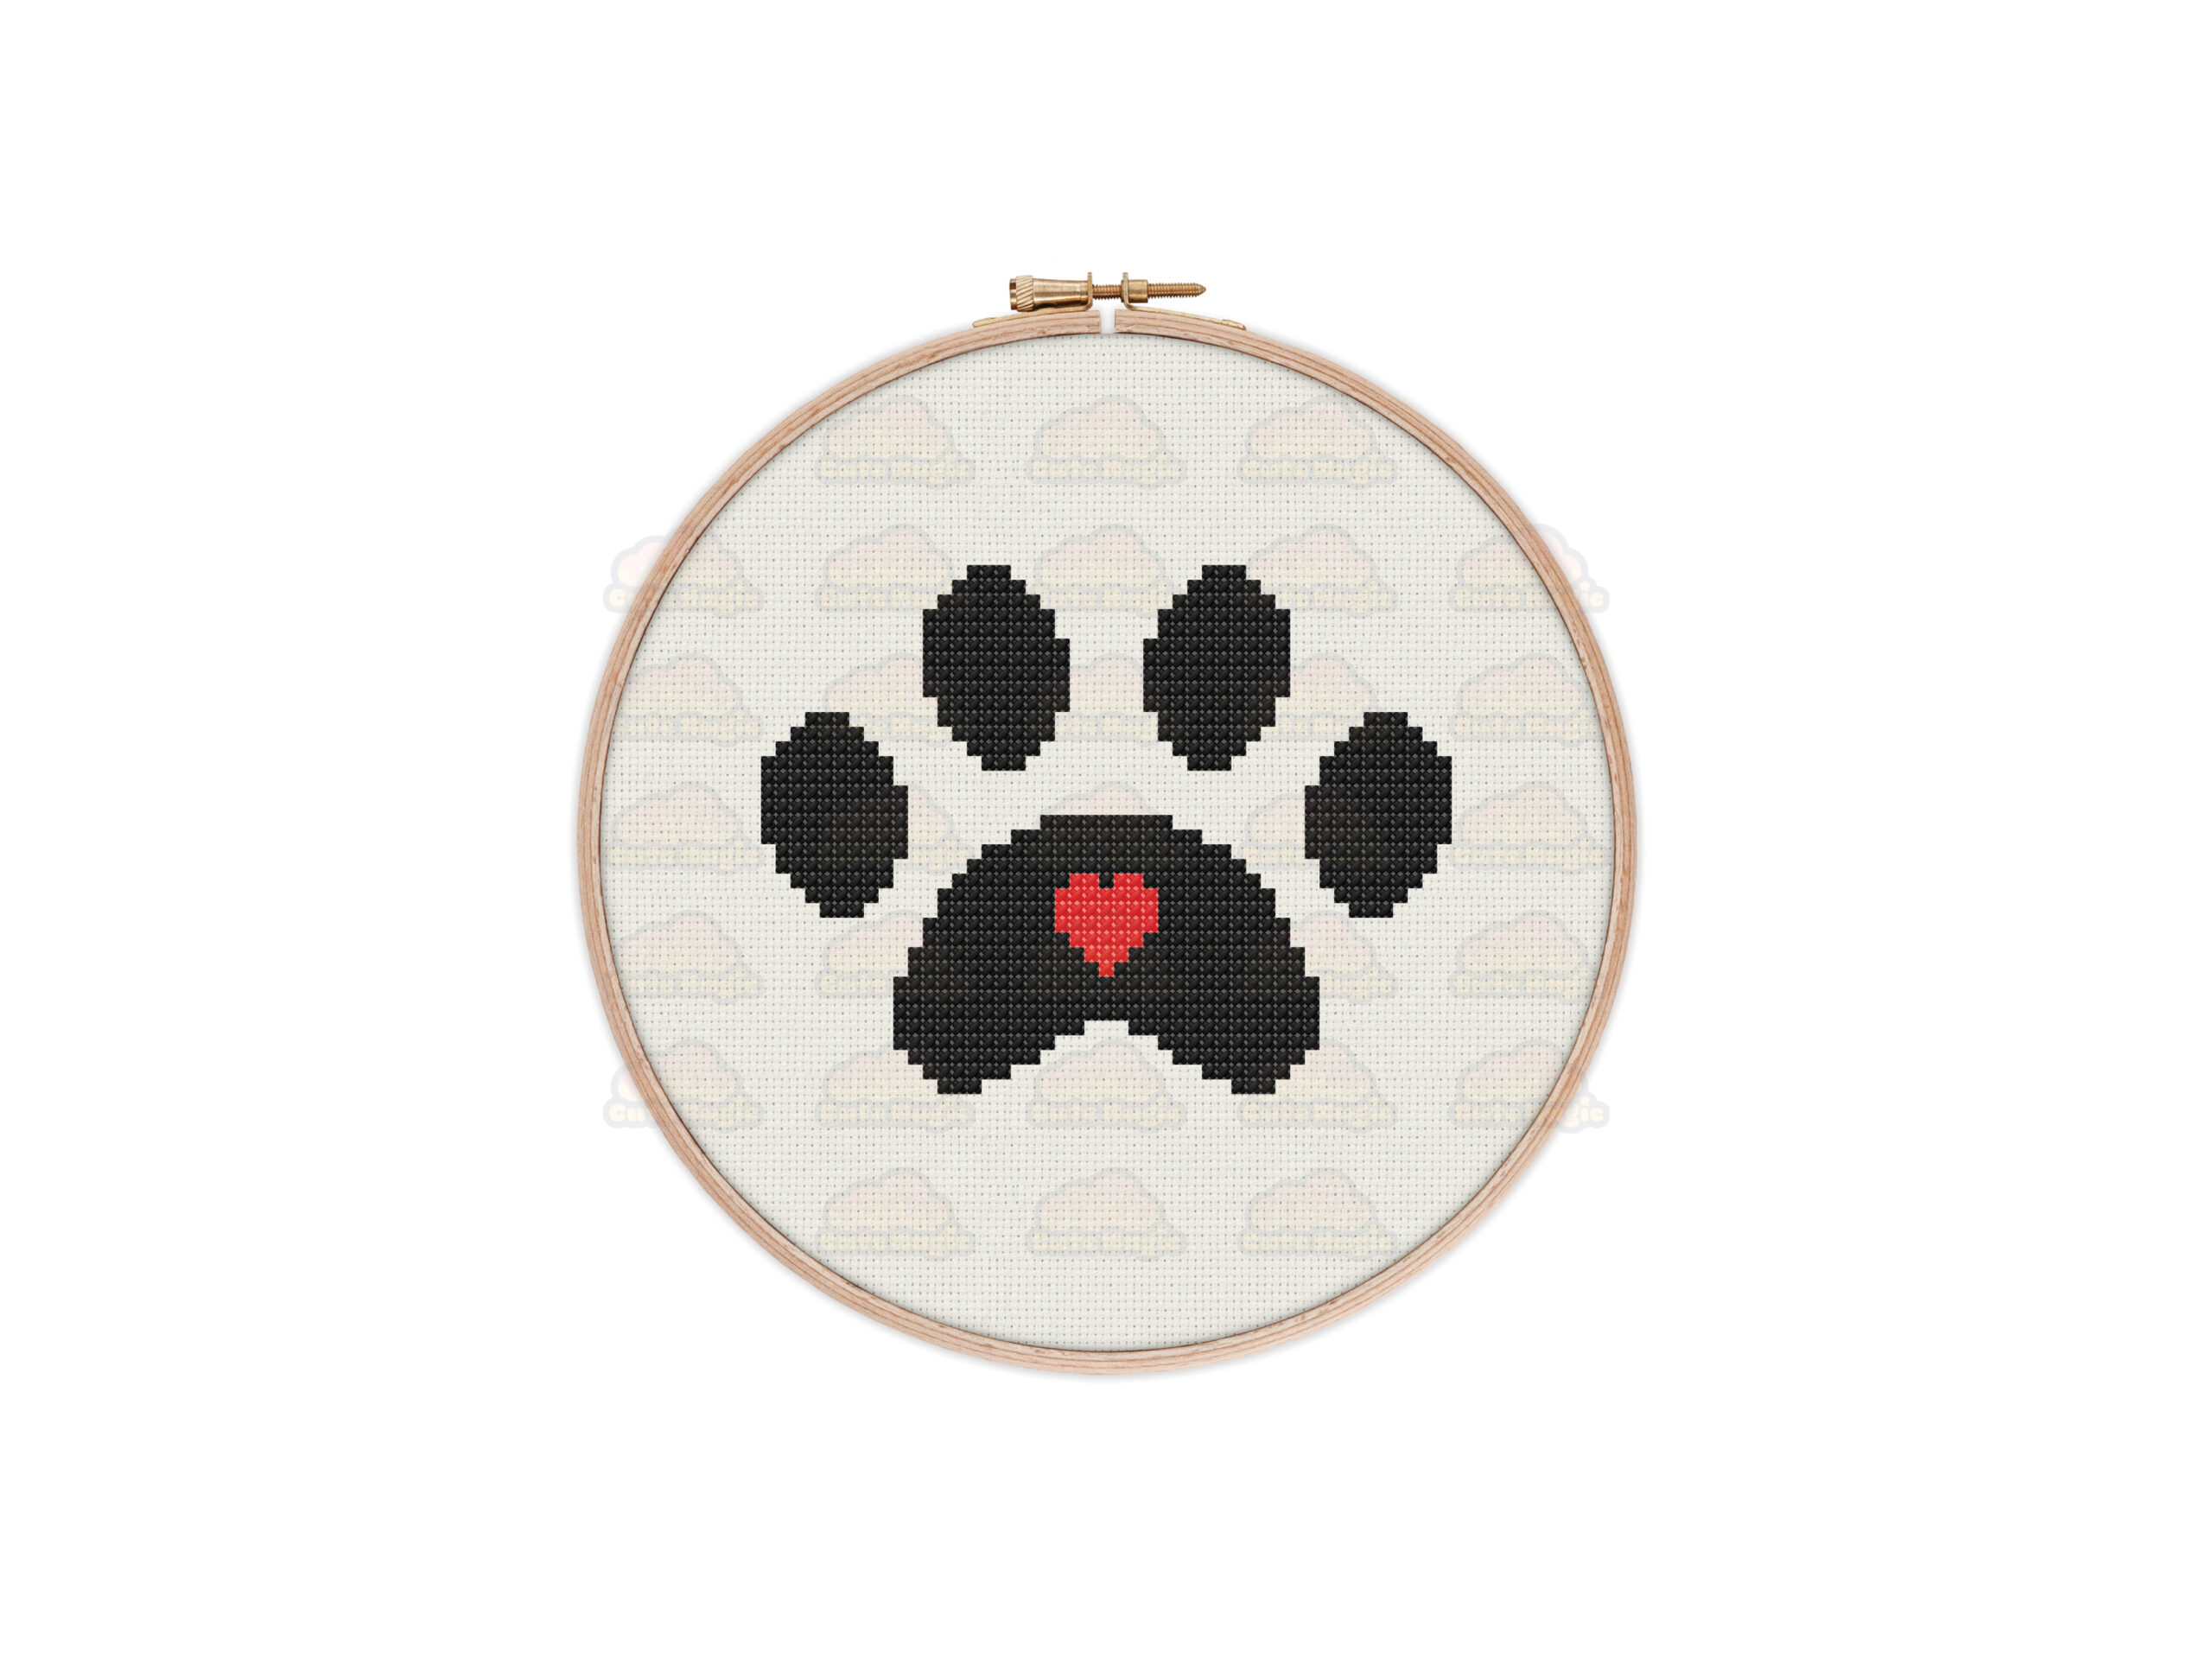 Paw Print Cross Stitch Pattern